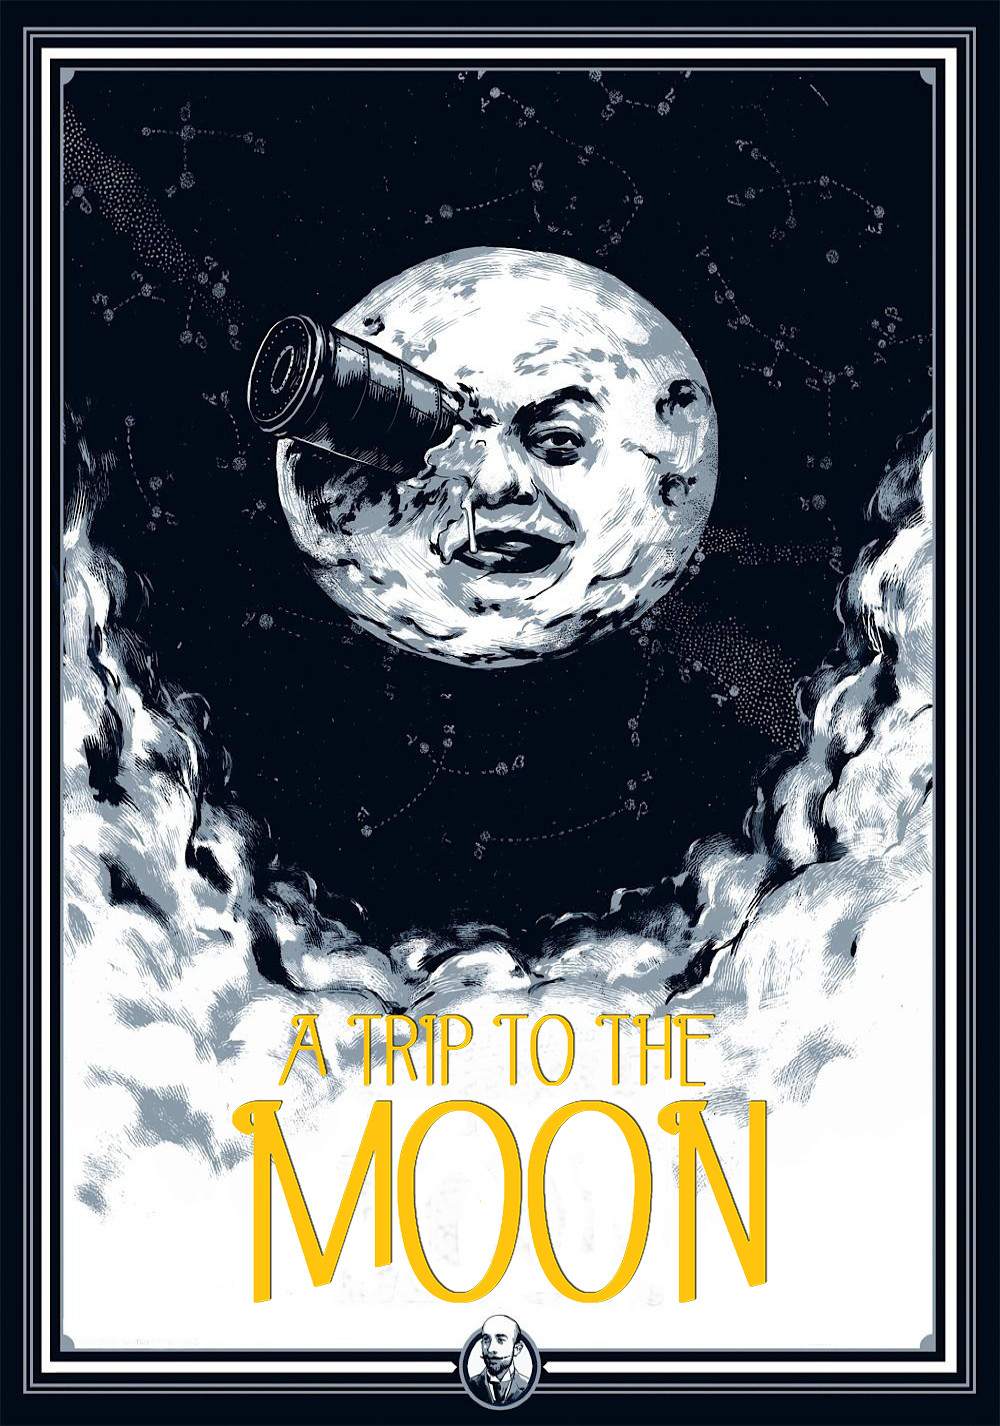 the story and theme behind george melies film a trip to the moon